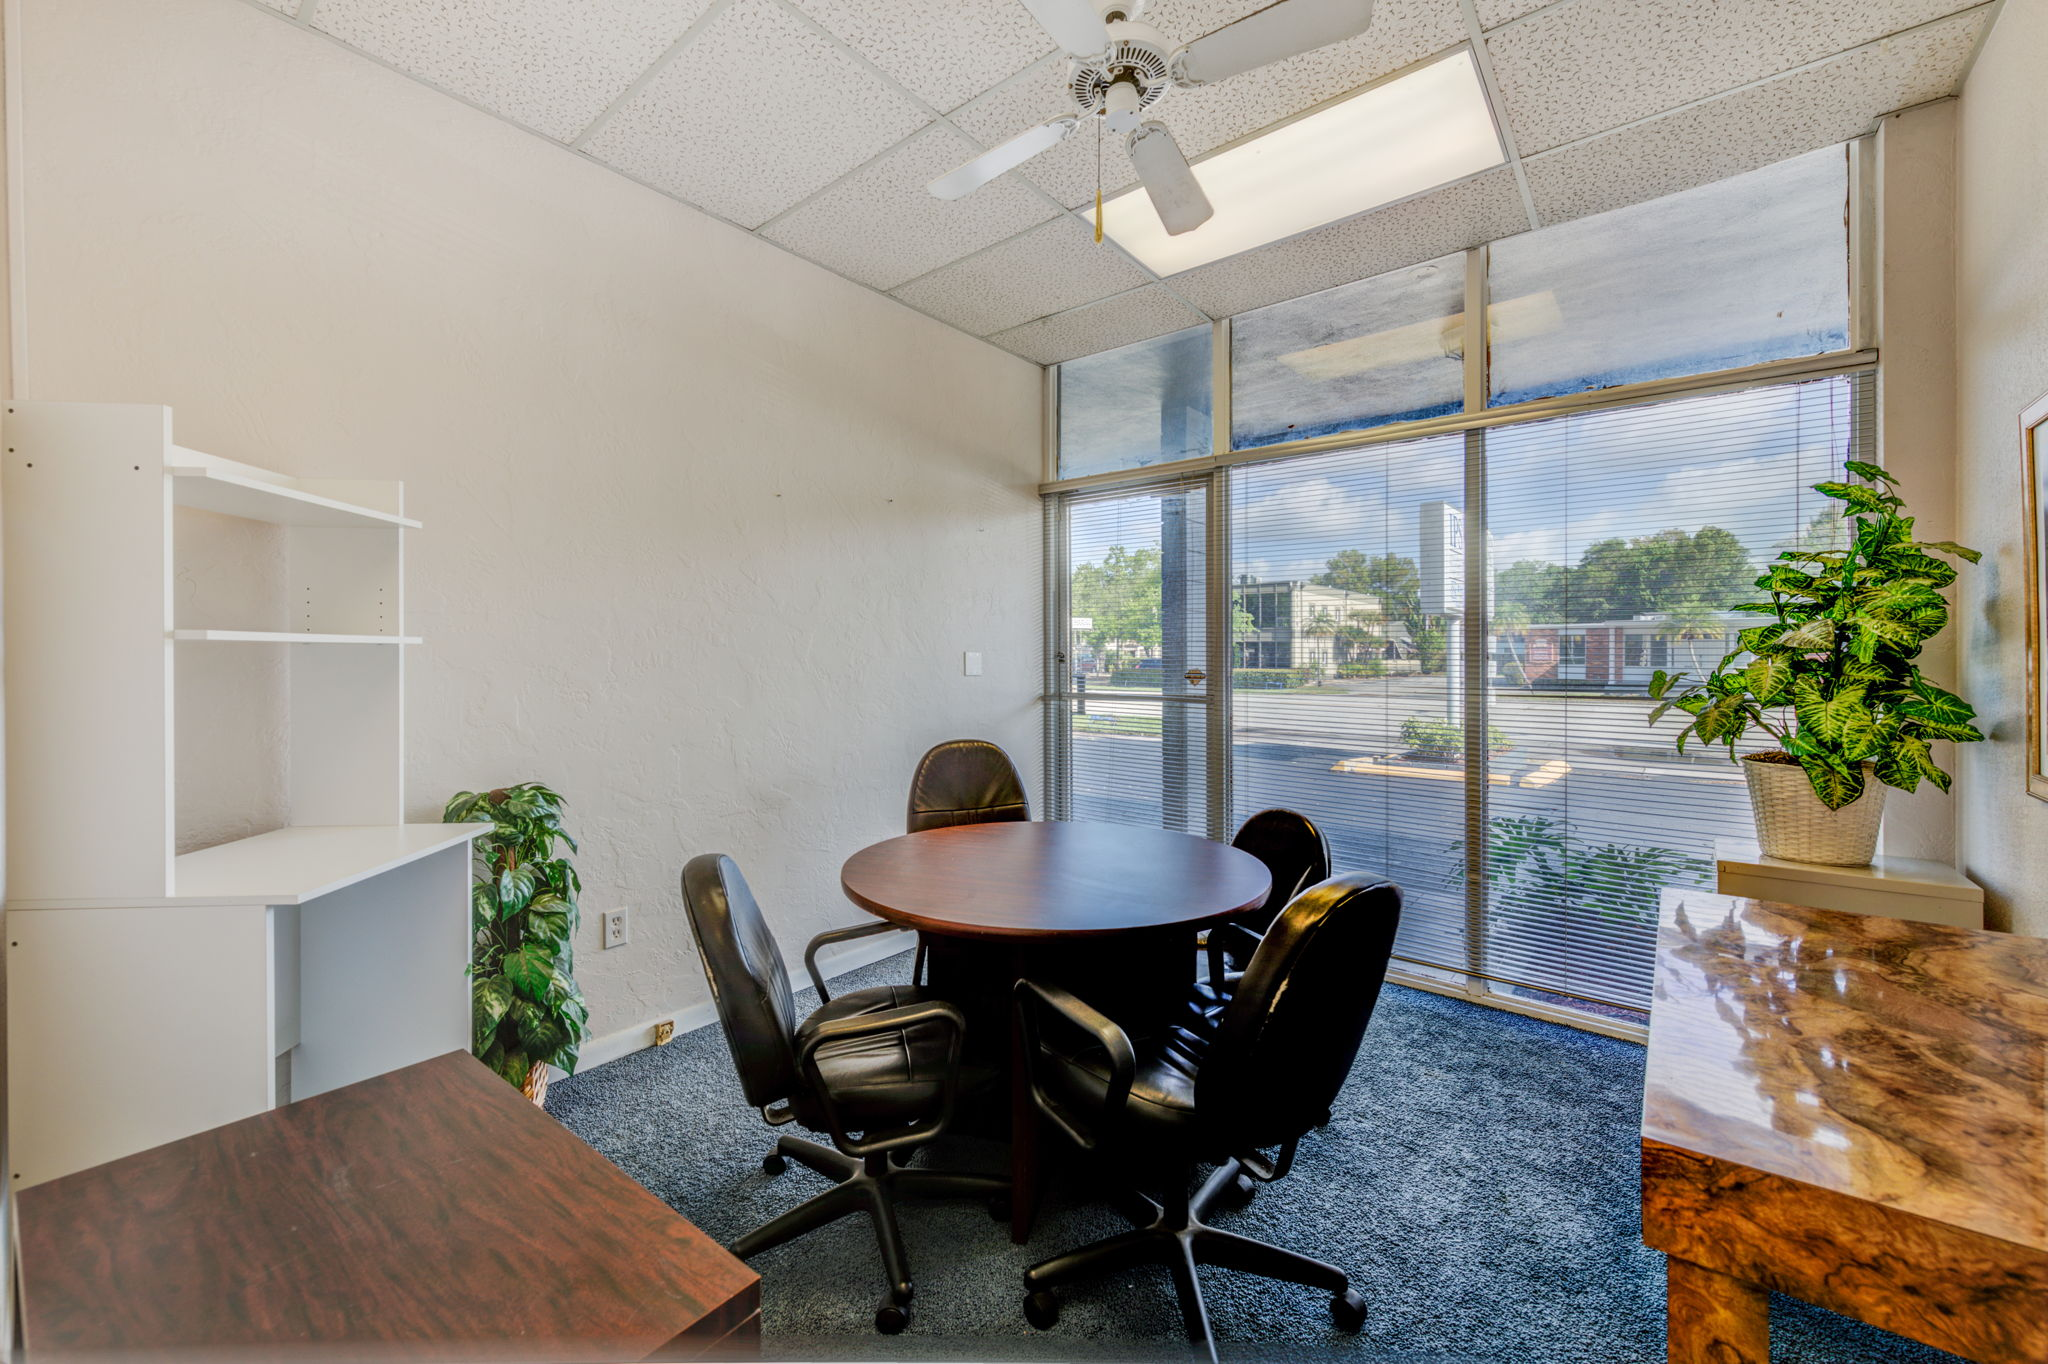 Second Conference Room/Office Area